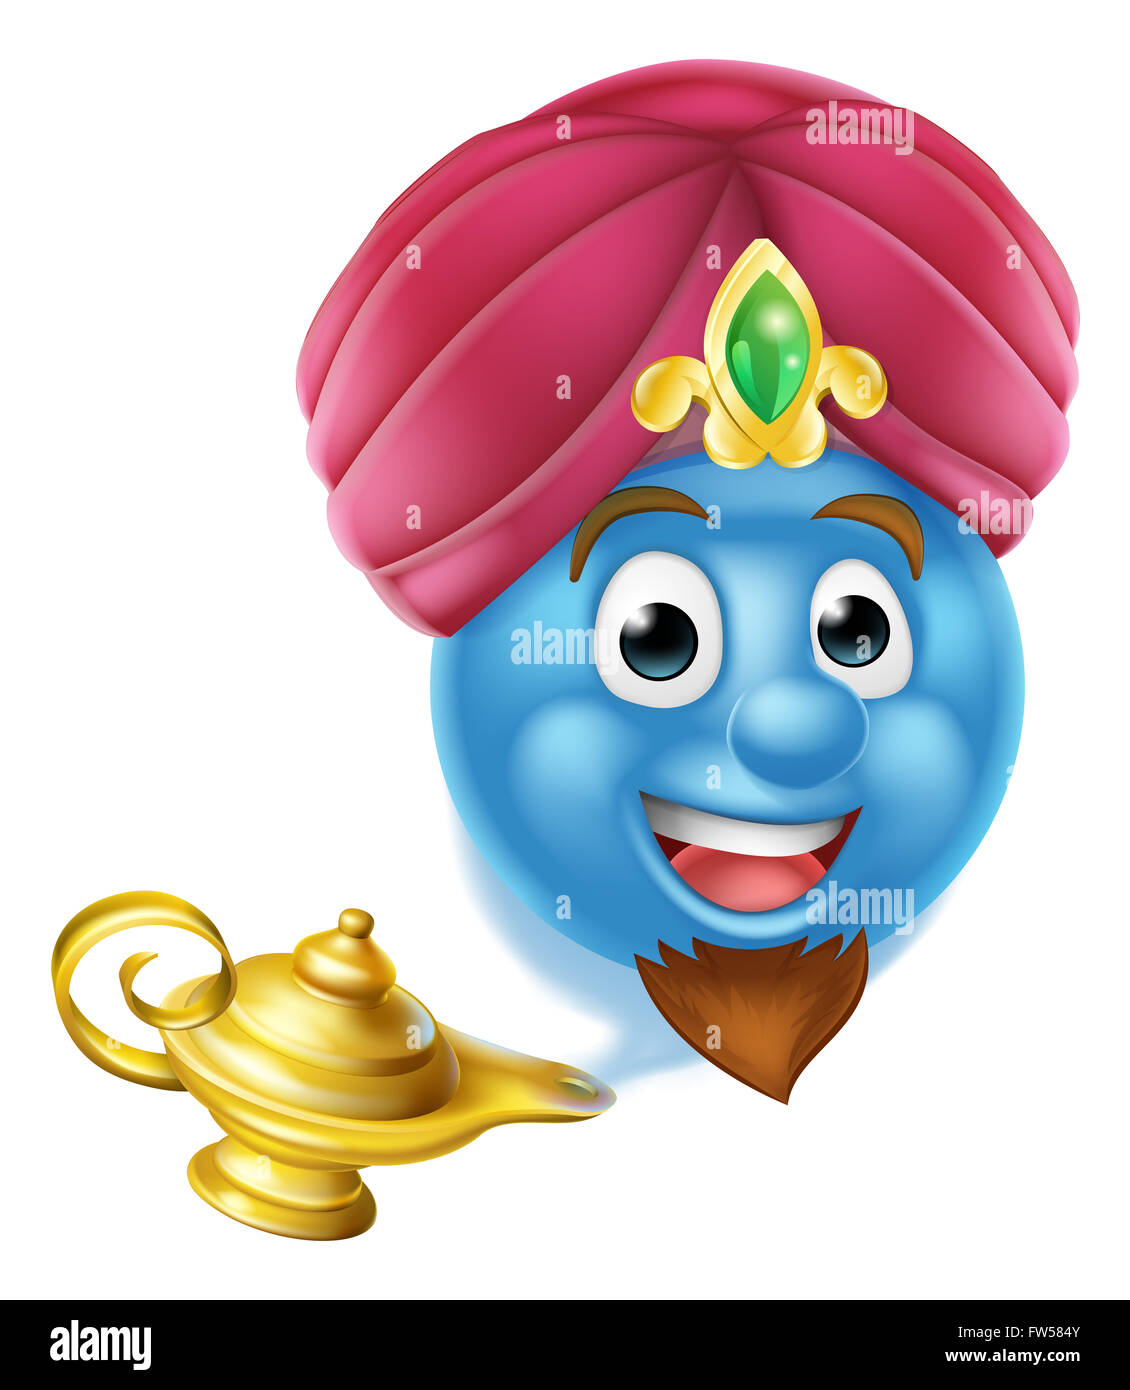 A Cartoon Emoticon Or Emoji Genie Like In The Story Of Aladdin Coming Out Magic Lamp